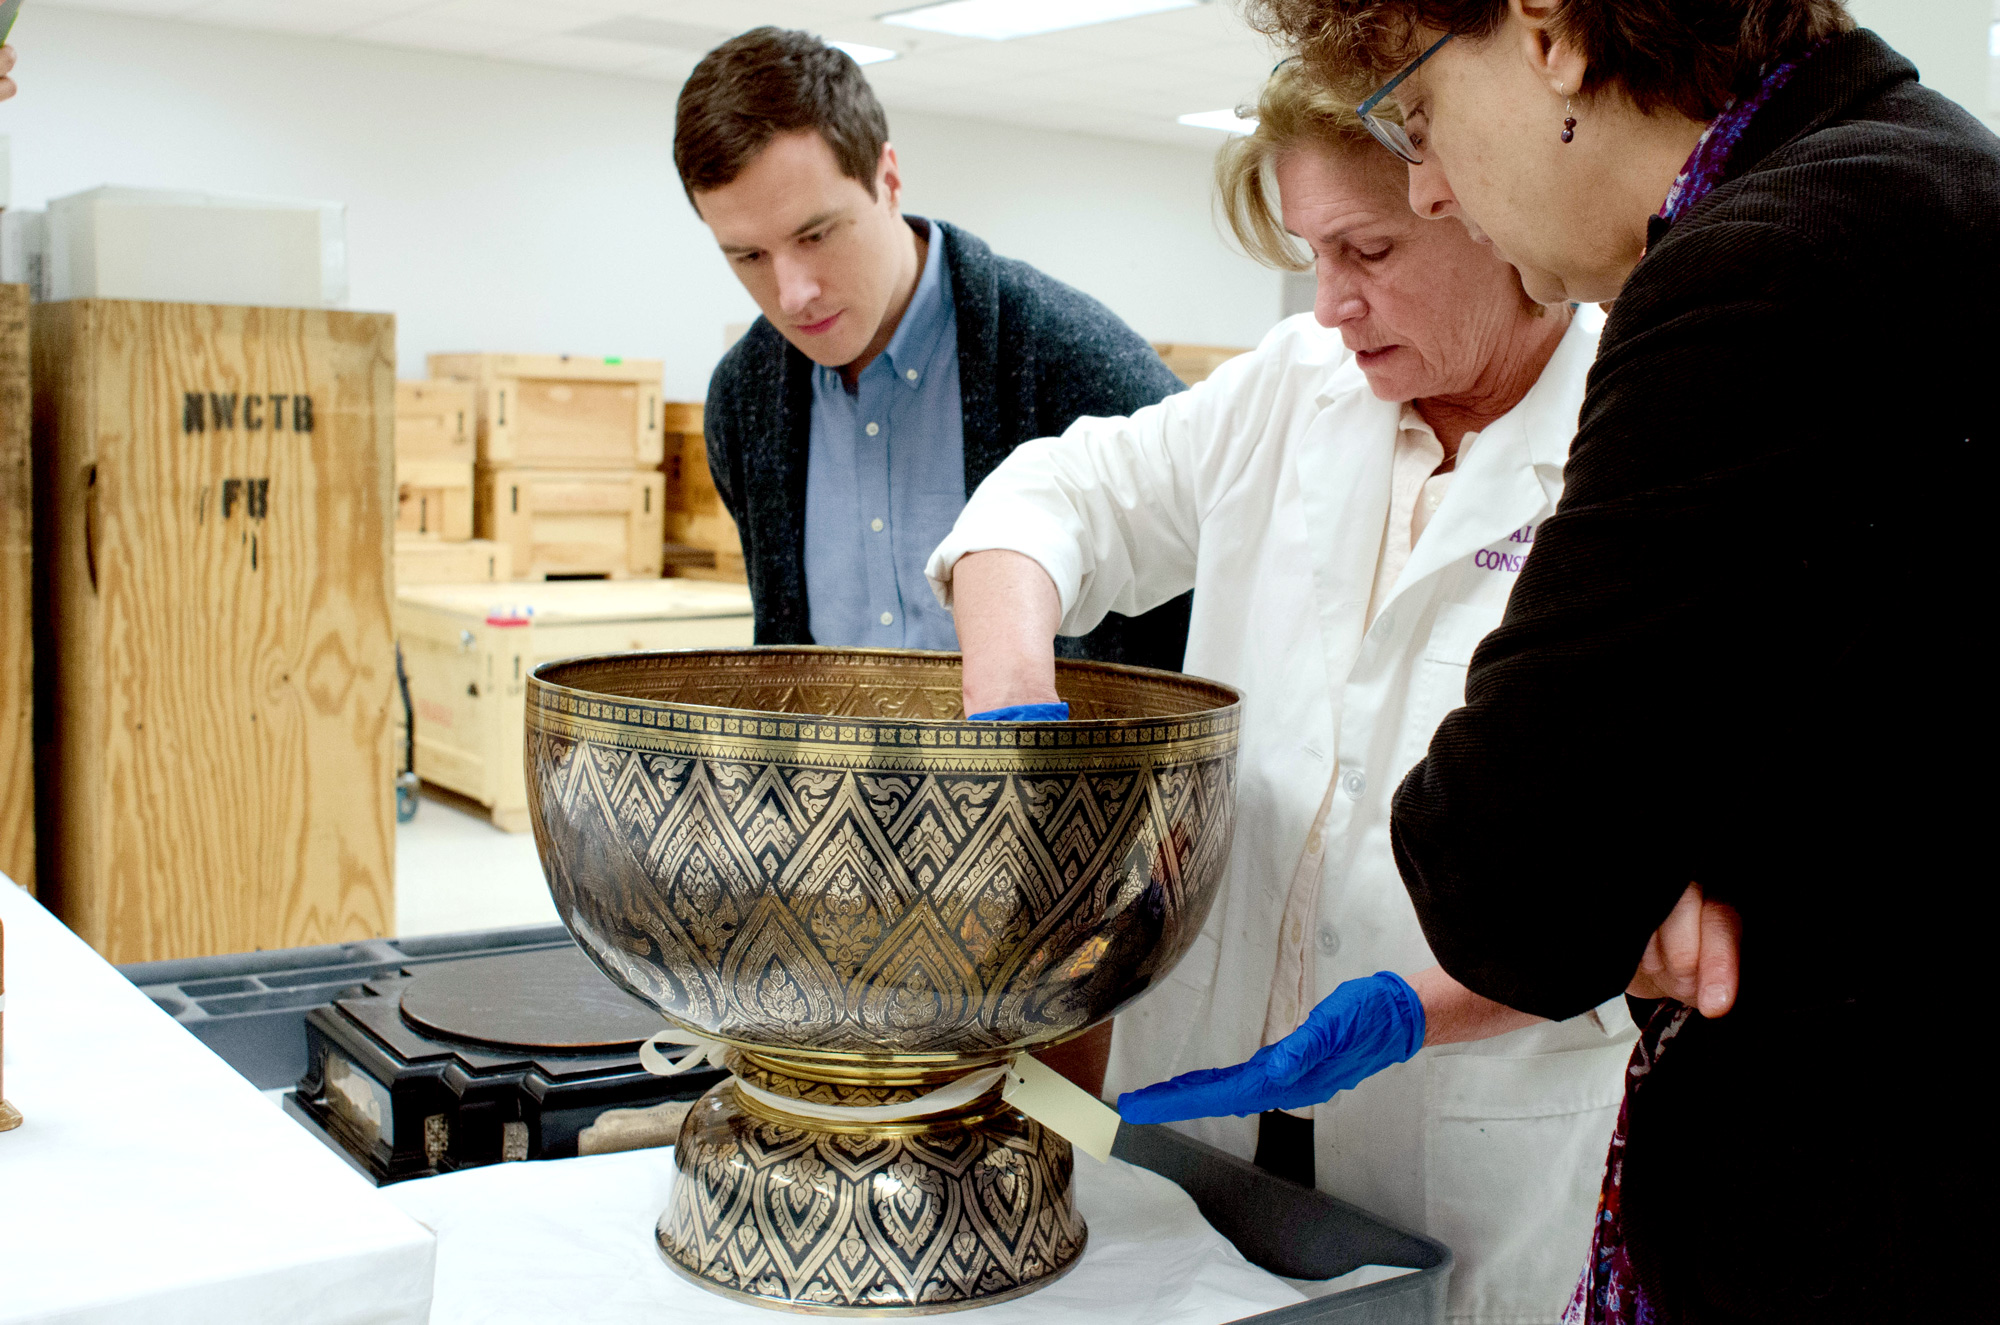 12/11/17 - National Archives Building, Washington, DC: Curator Trevor Merrion and Kim Koons of the National Archives (right) watch as conservator Cathy Valentour explains the necessary conservation treatment for the gilded niello bowl that was gifted to President Herbert Hoover by King Prajadhipok during his U.S. visit in 1931.